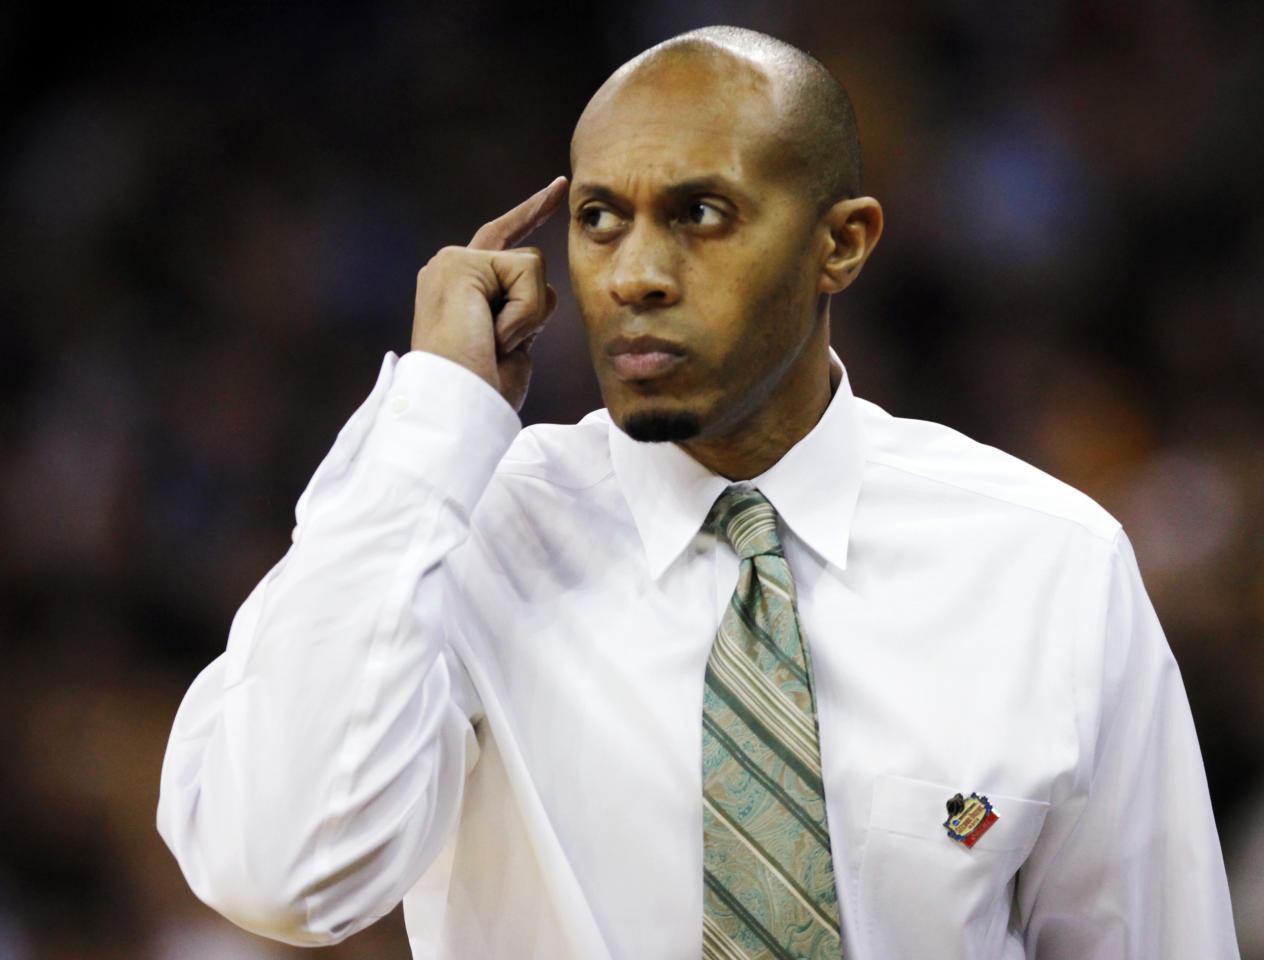 Norfolk State coach Anthony Evans signals his team during the first half of an NCAA college basketball tournament game against Missouri at CenturyLink Center in Omaha, Neb., Friday, March 16, 2012. (AP Photo/Nati Harnik)